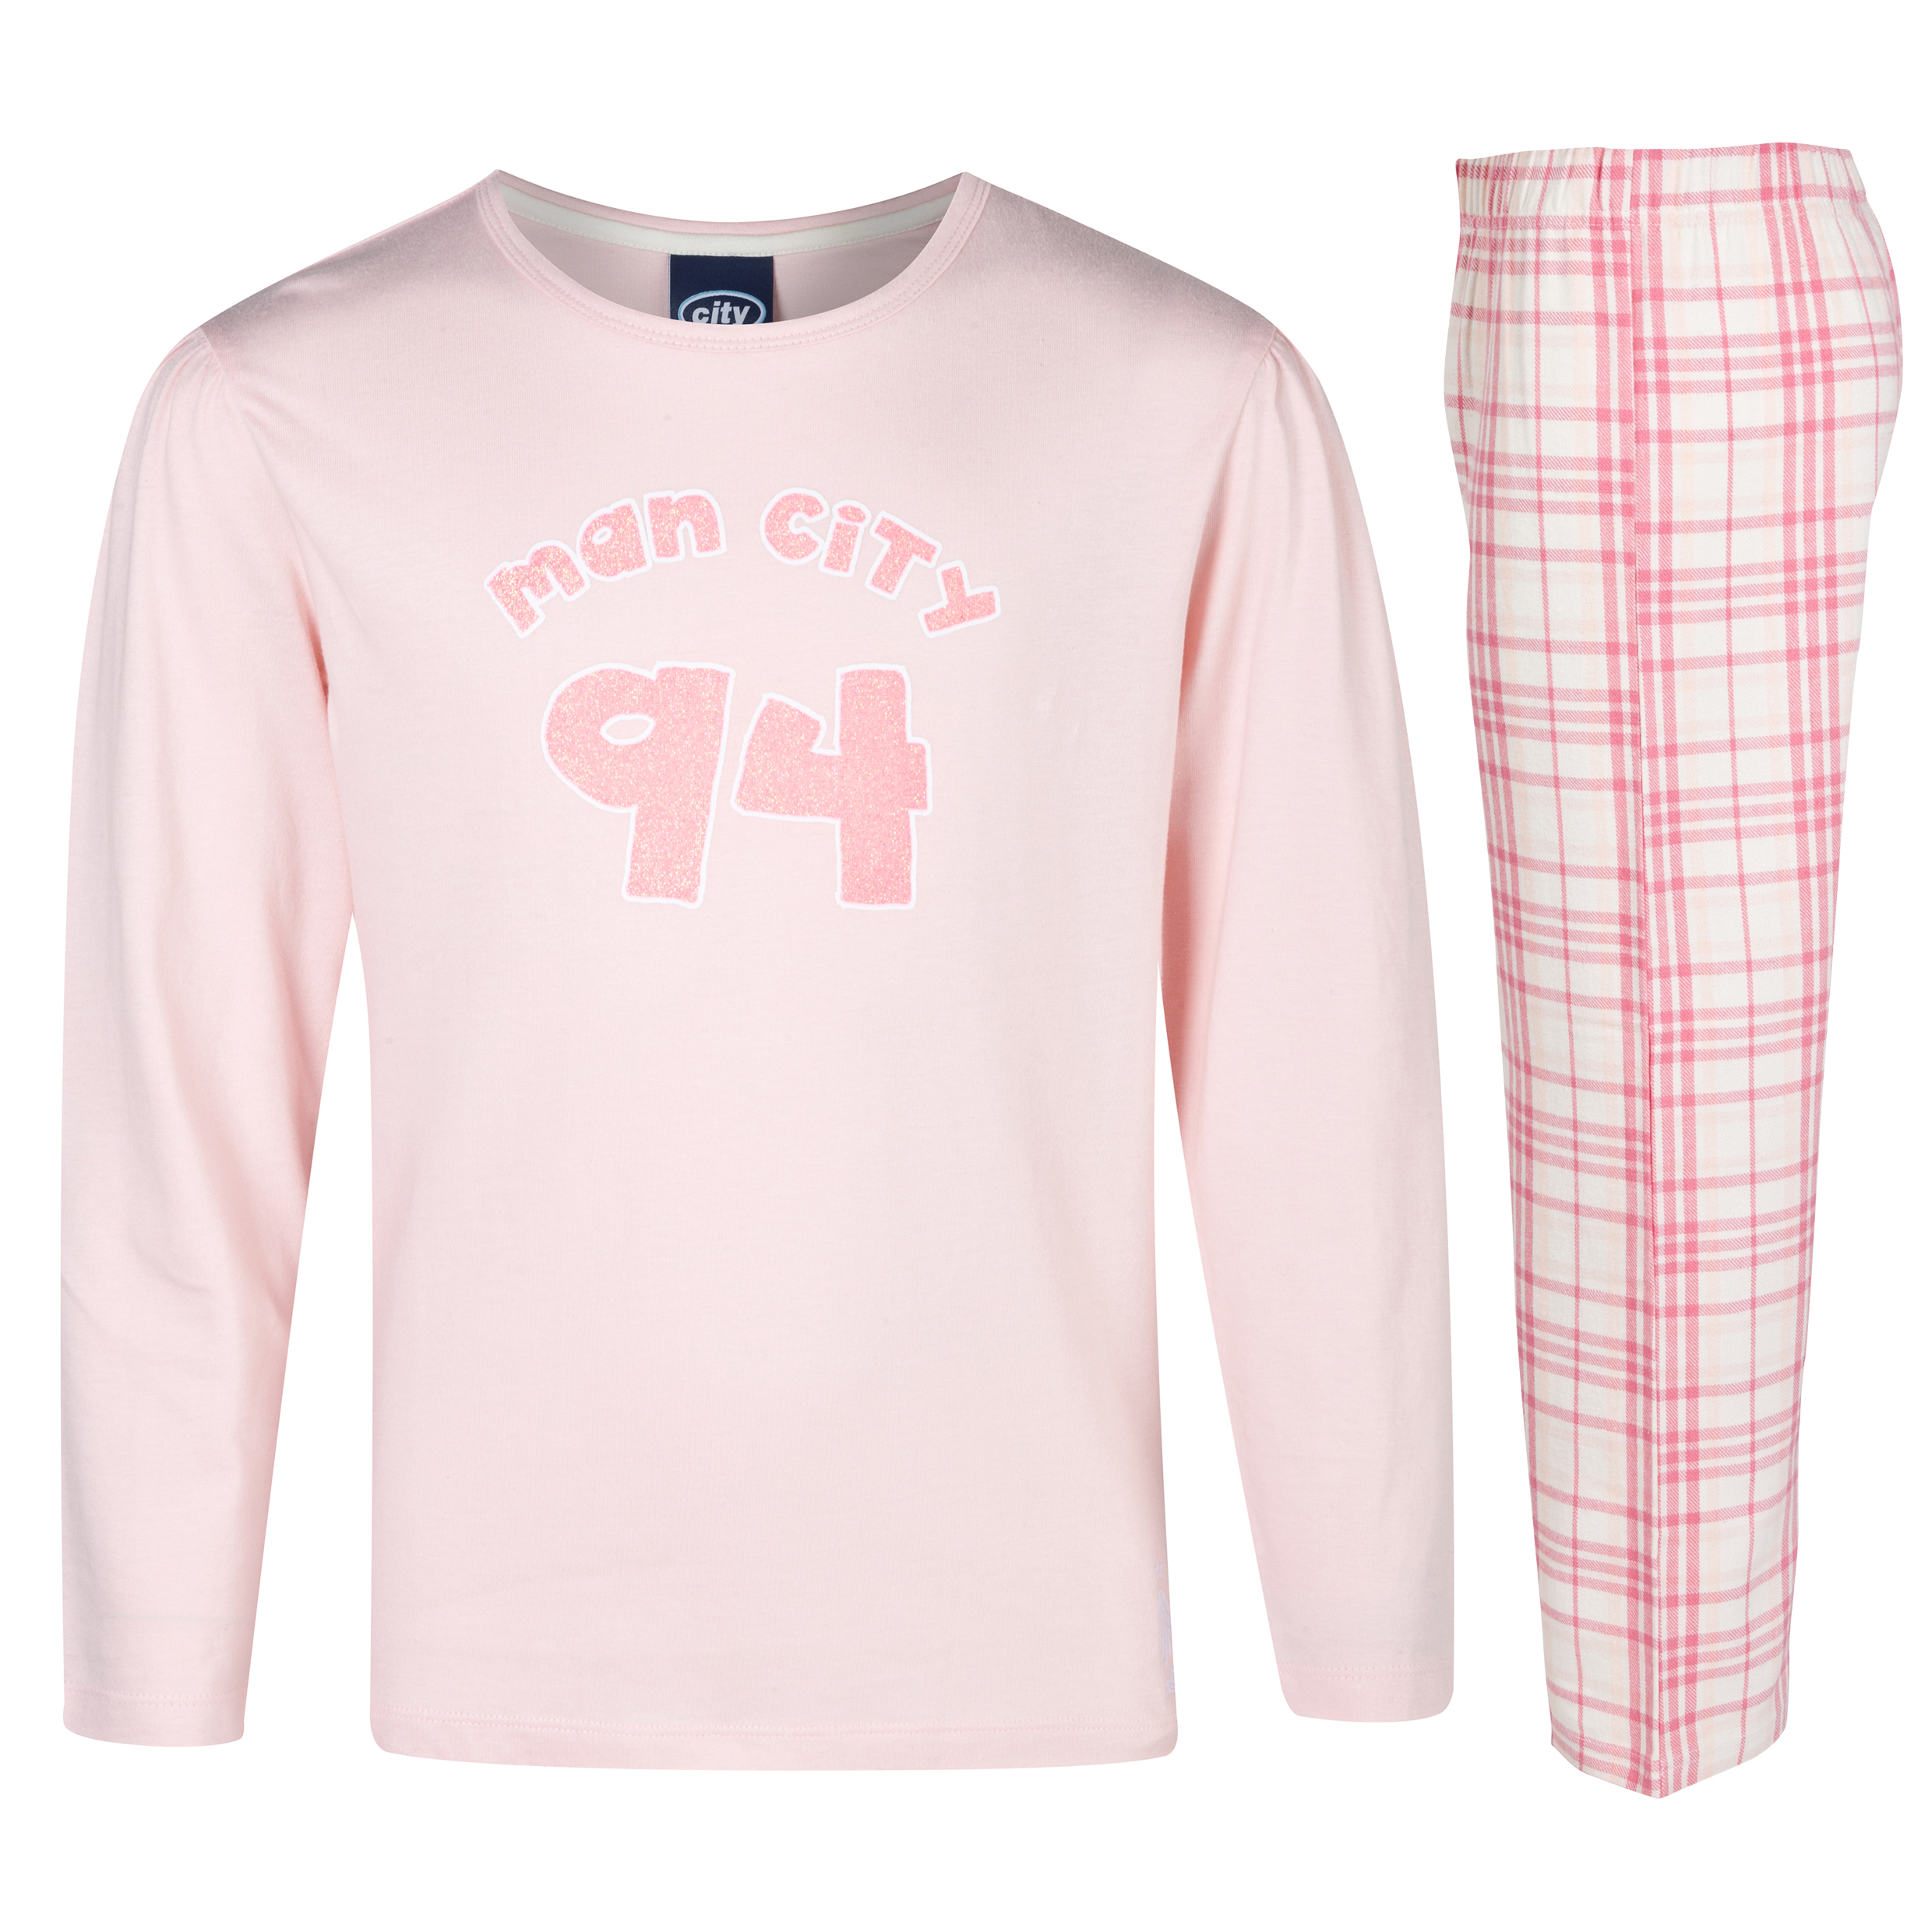 Manchester City 94 Pyjamas Older Girls Pink